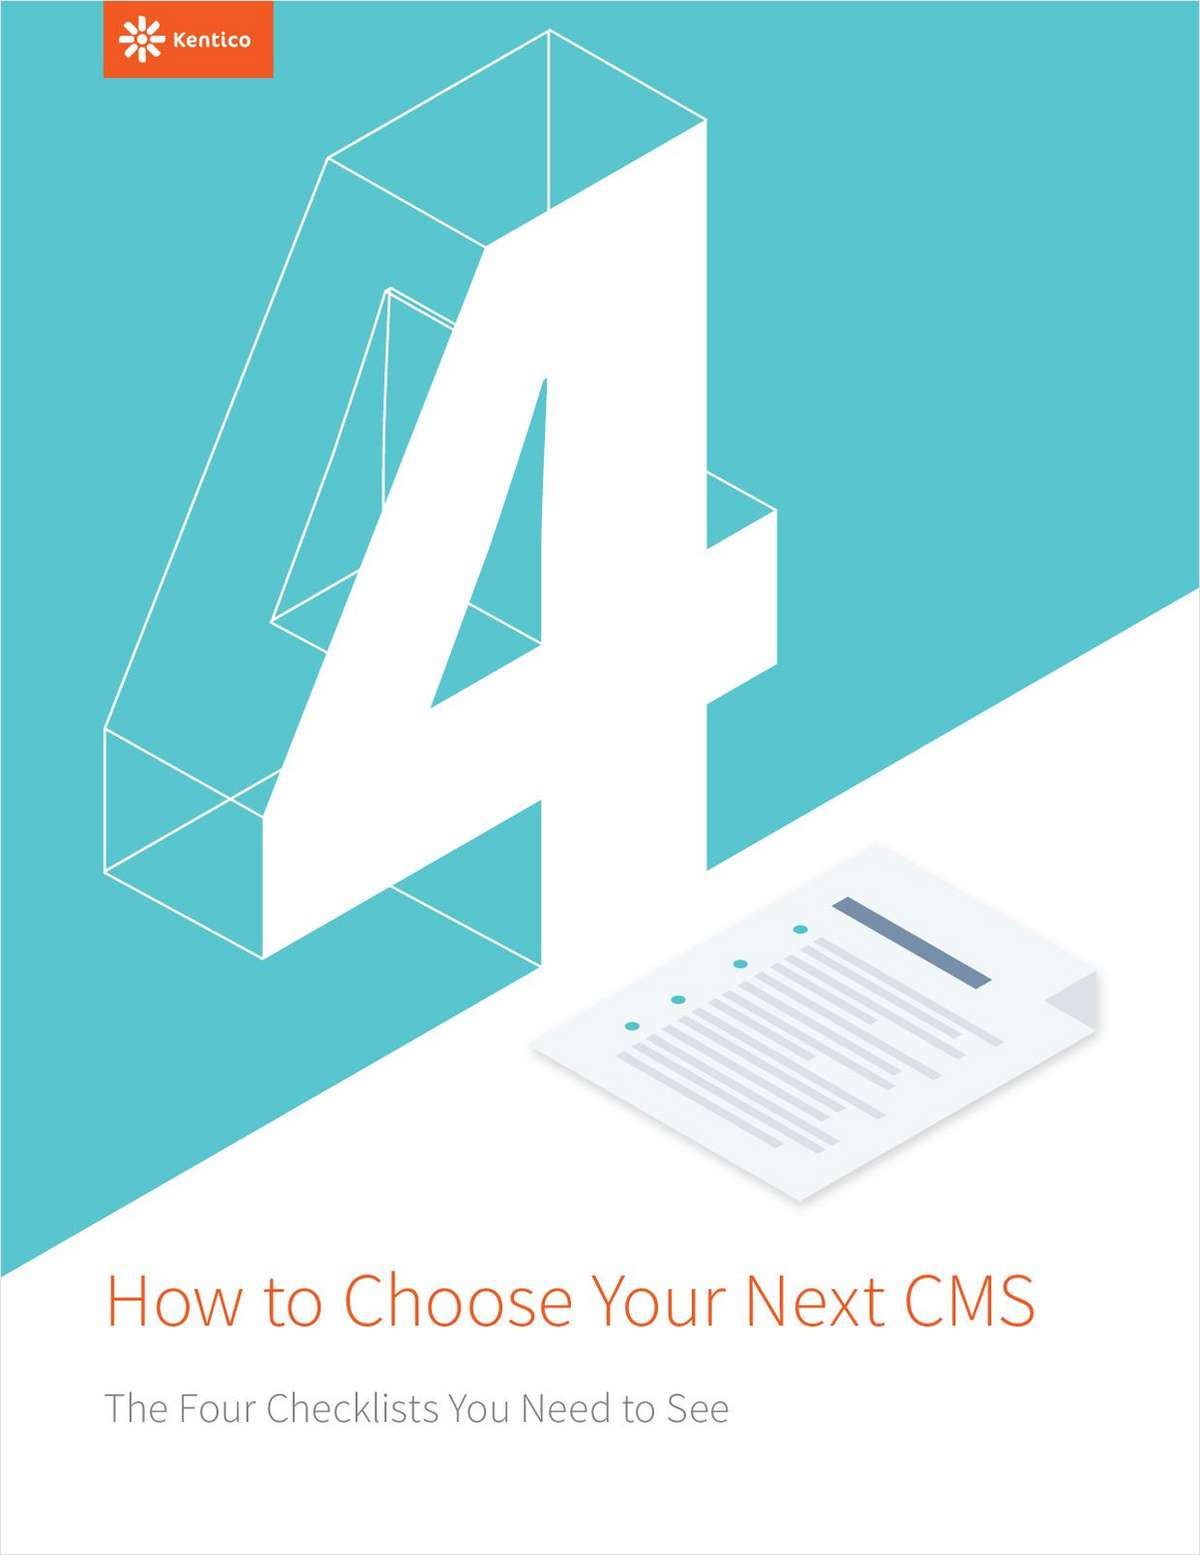 How to Choose Your Next CMS